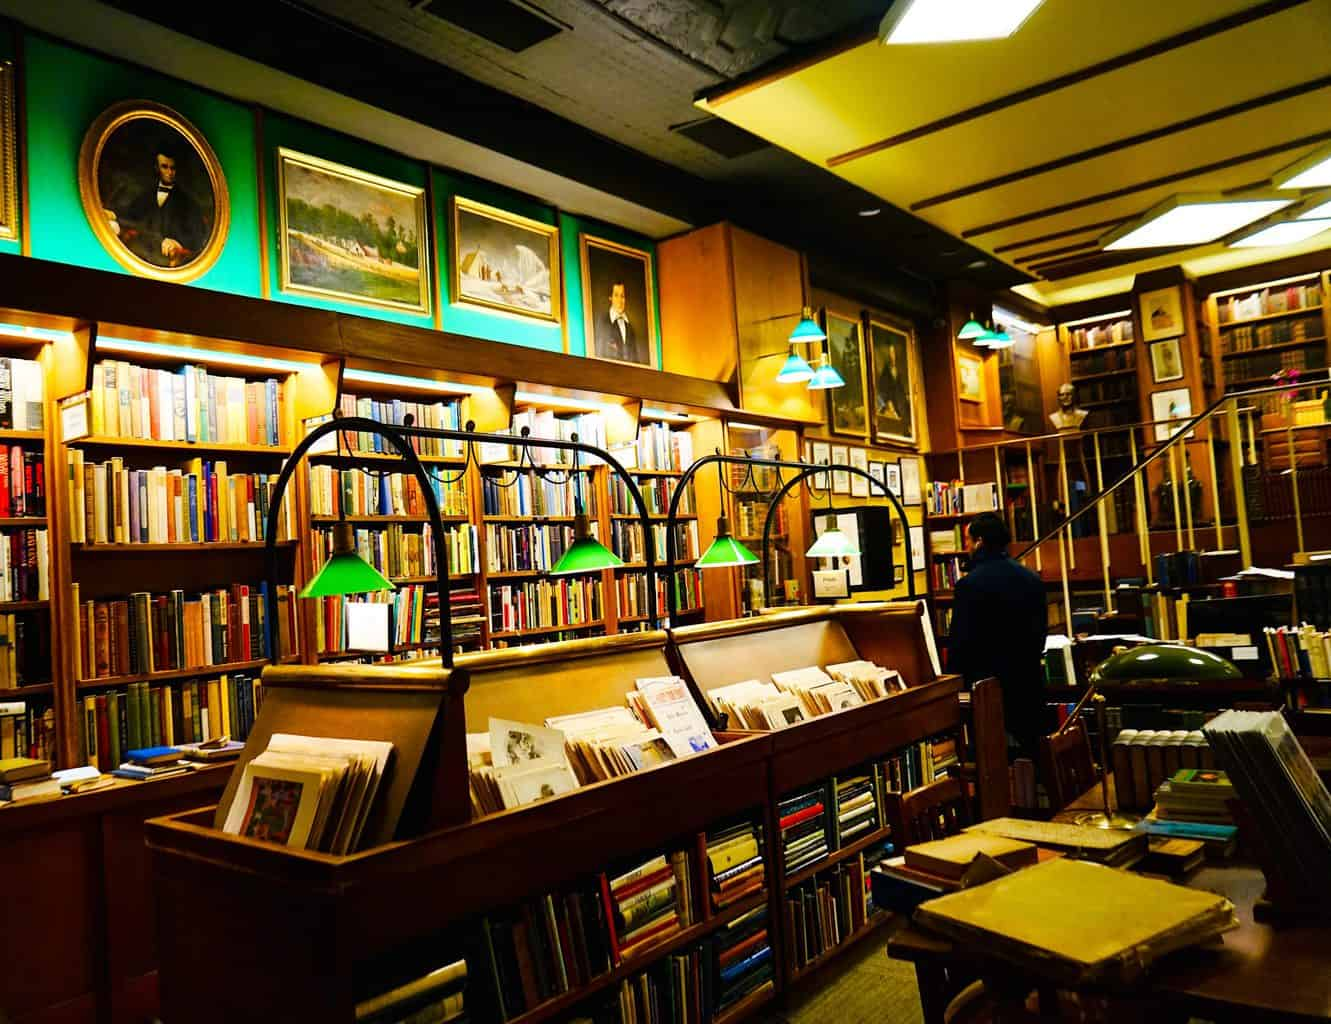 The charming, library-like interior of Argosy Bookstore in Manhattan. Image sourced from Andrew Wertheimer of Flickr.com.